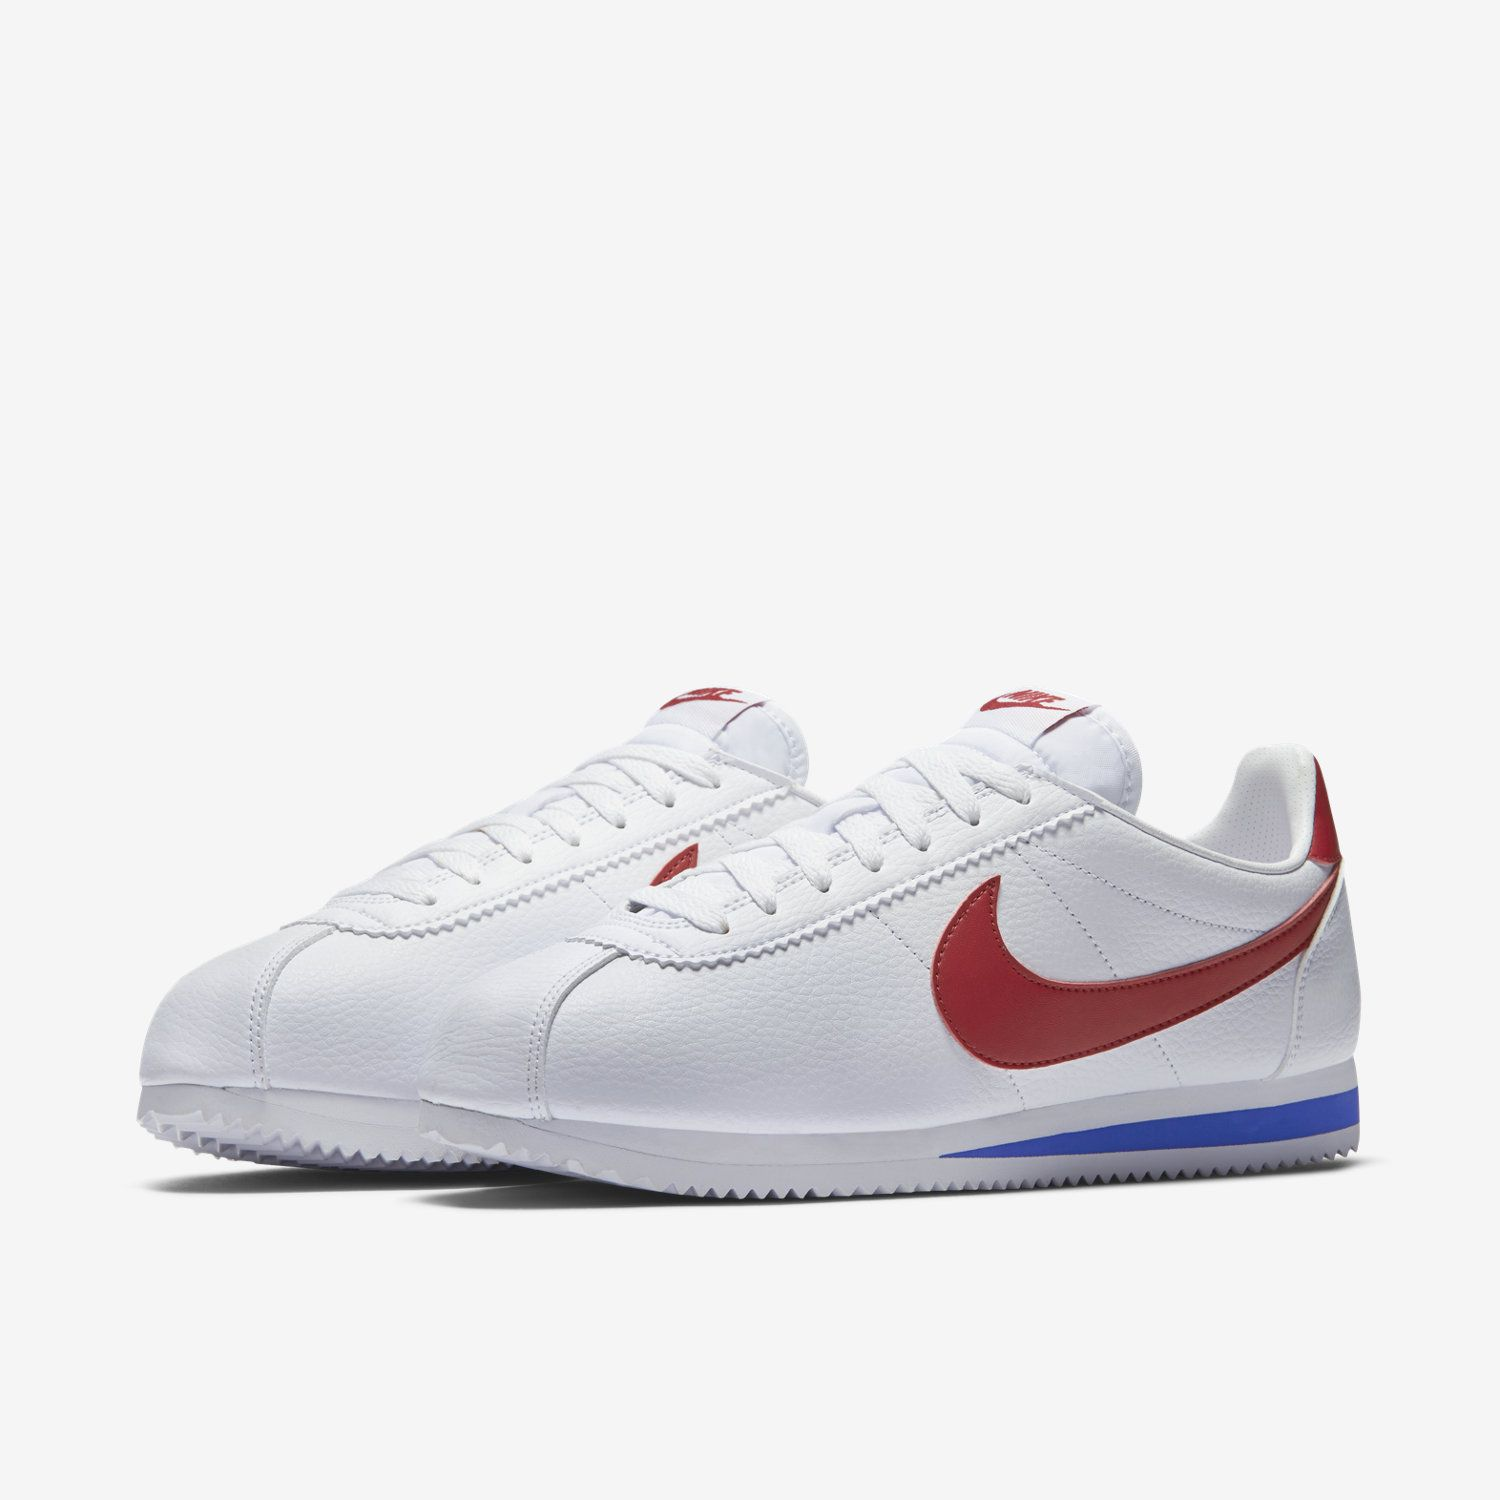 Nike Cortez (Forrest Gump shoes) hella fly #steveharrington